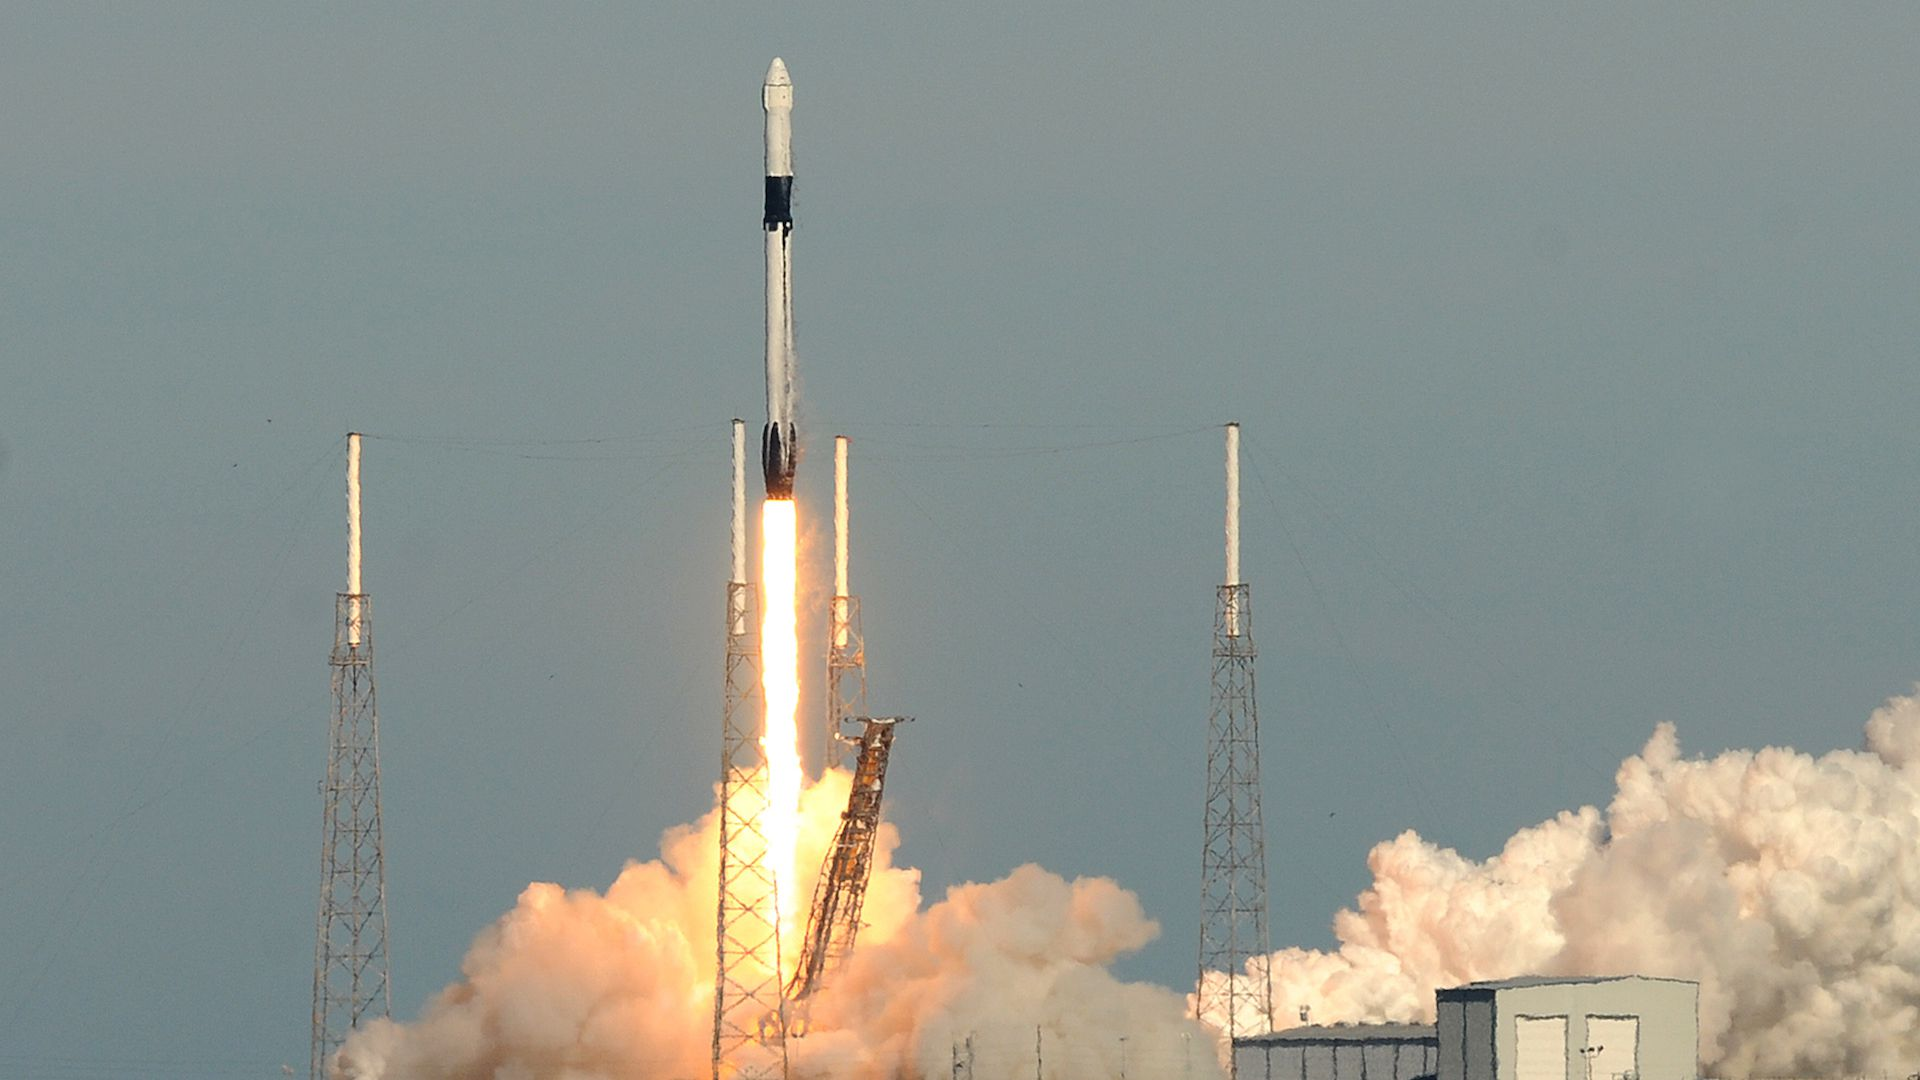 SpaceX rocket launch from Cape Canaveral, Florida.